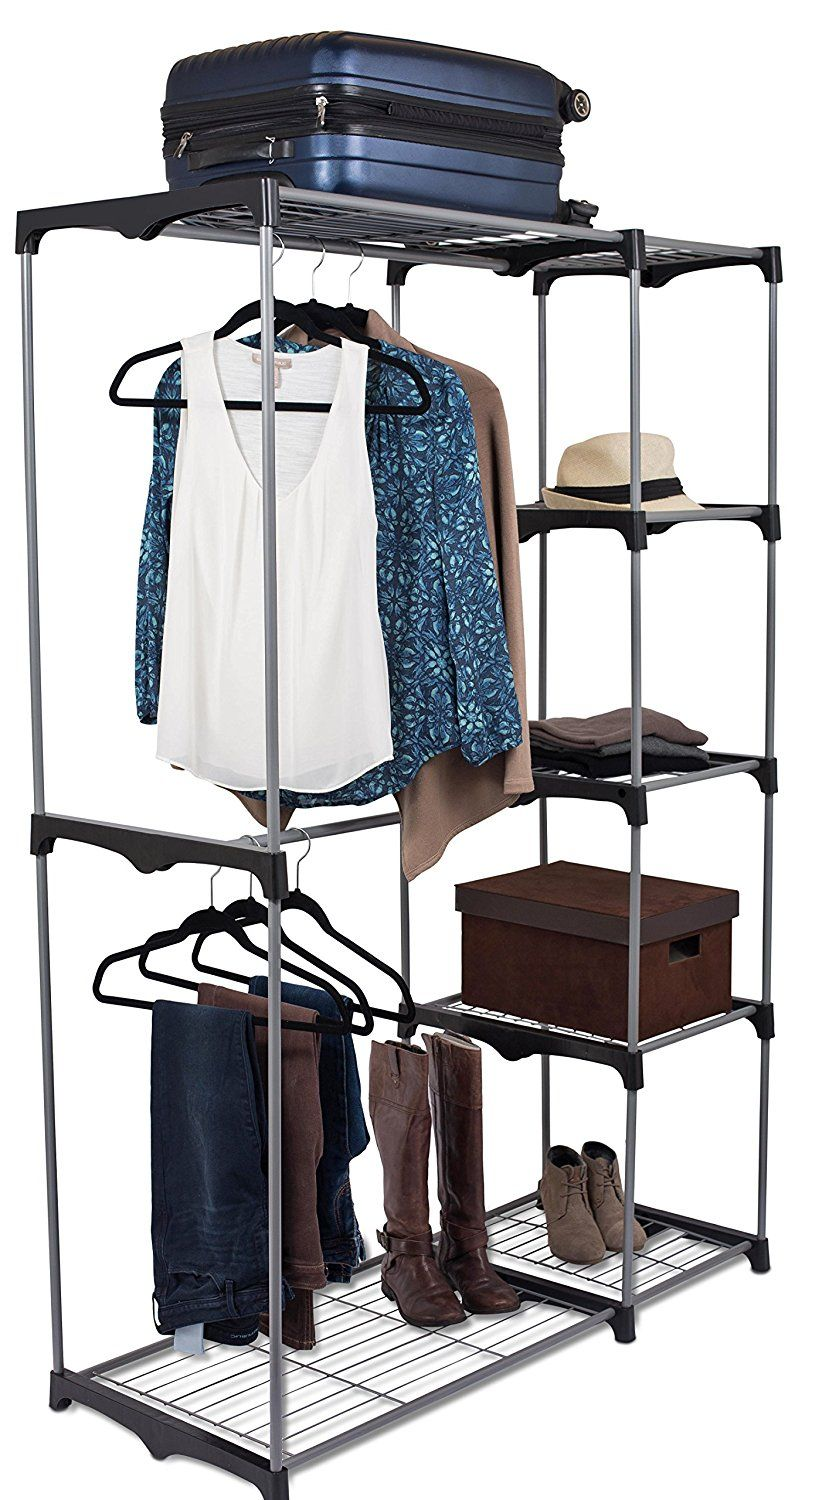 Free 2 Day Shipping Buy Internet S Best Portable Closet Organizer Double Rod Freestanding Garment Rack Mult In 2020 Garment Racks Portable Closet Wardrobe Storage